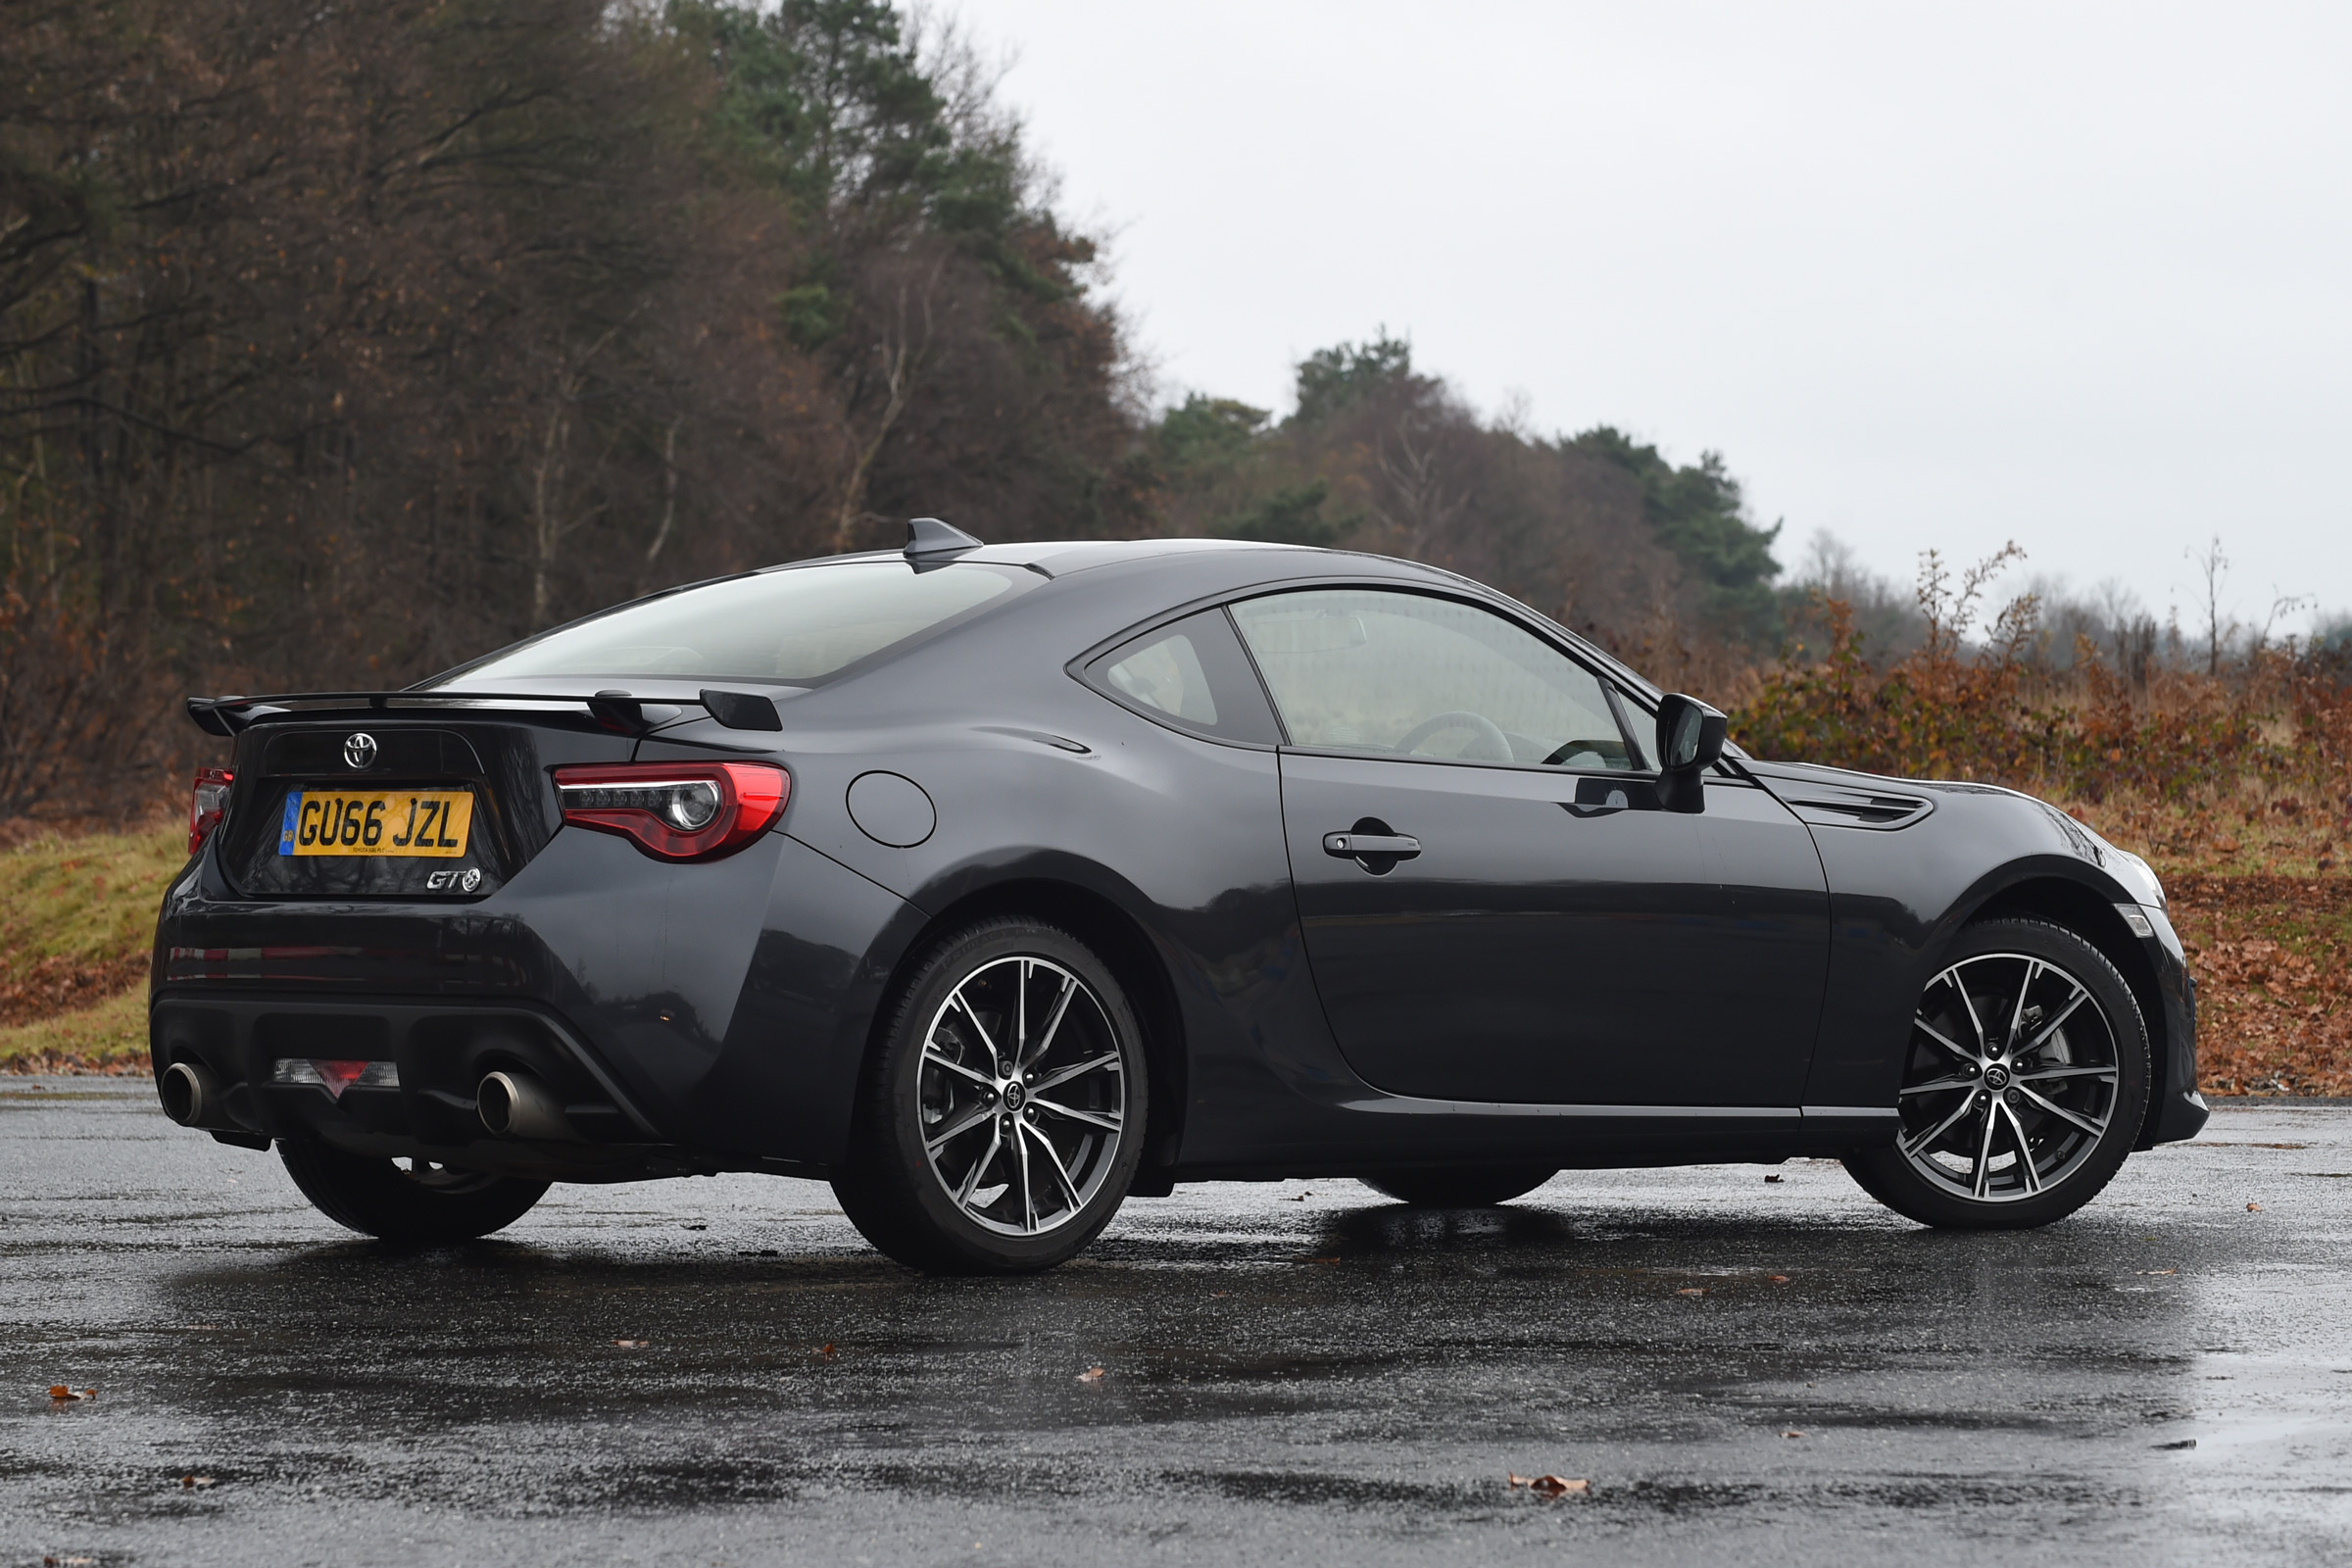 2017 Toyota GT86 Black Exterior Rear And Side (View 12 of 13)